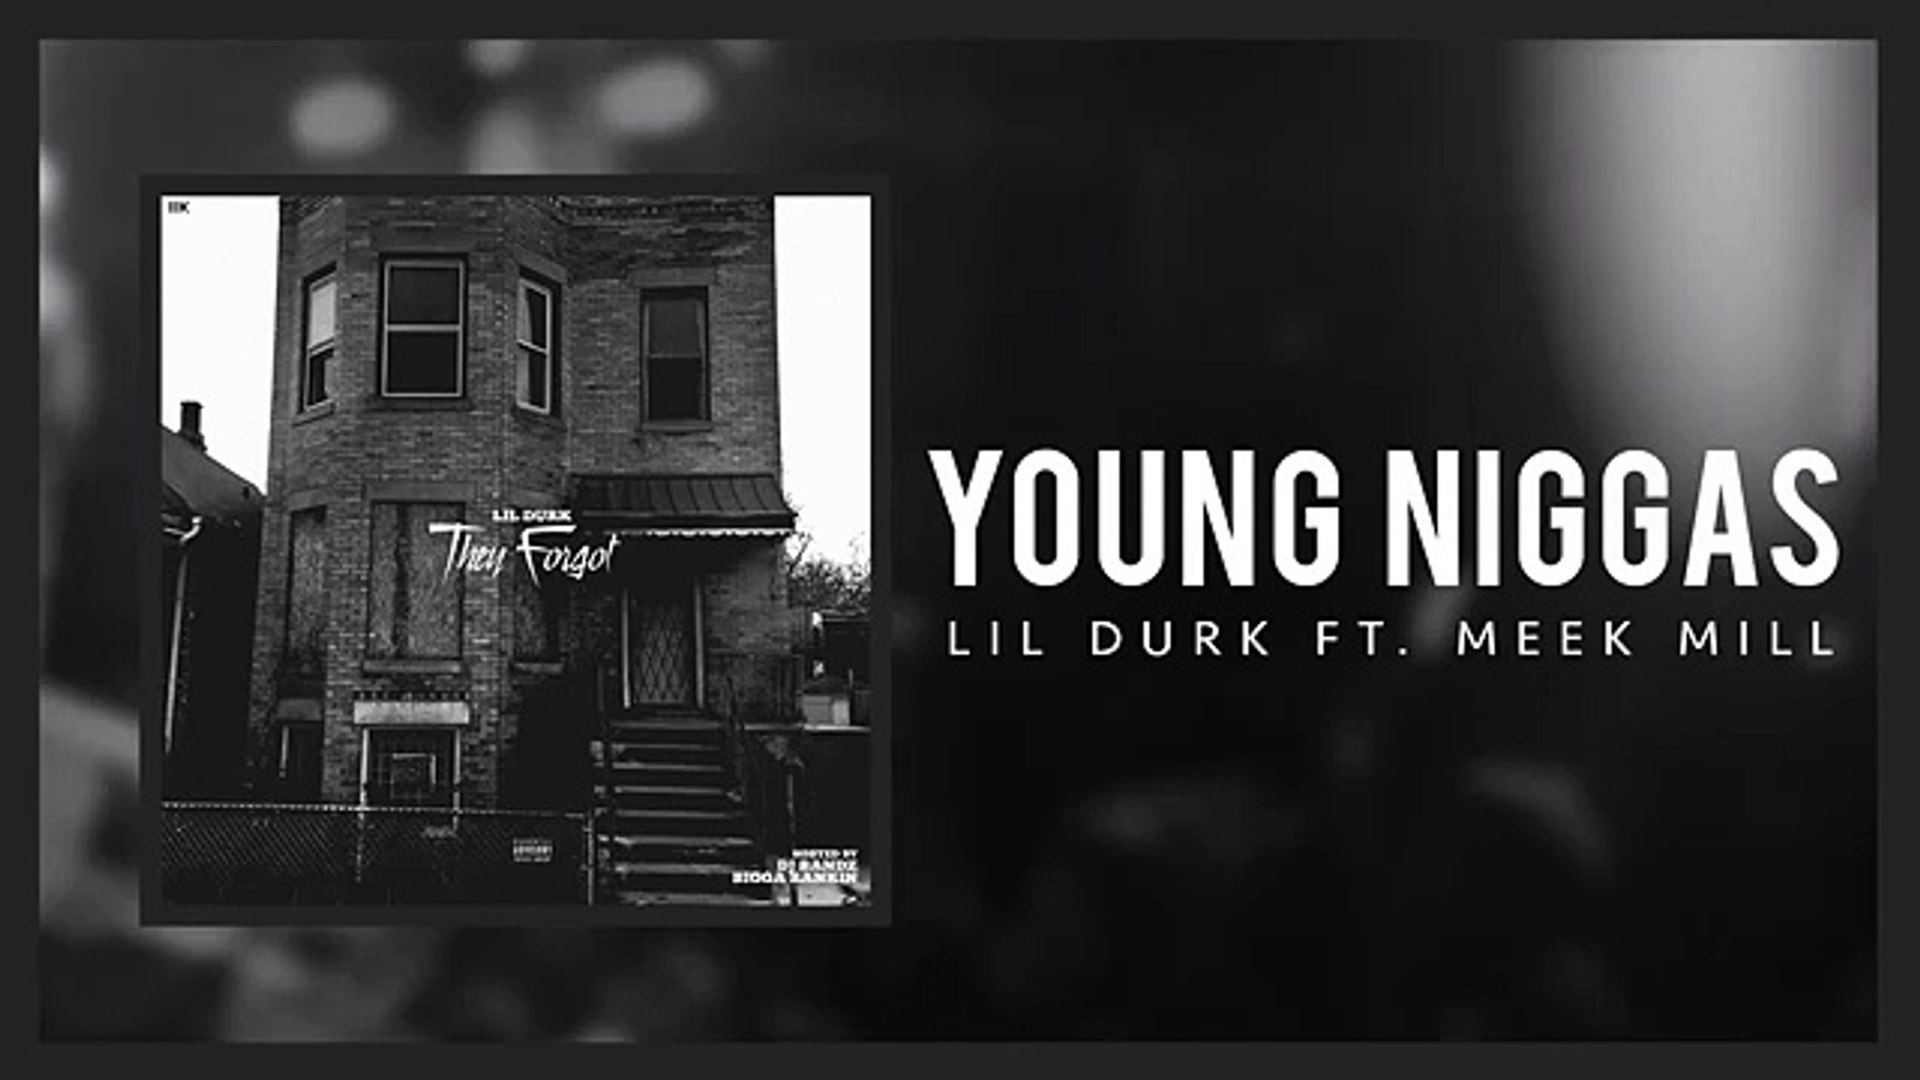 Lil Durk - Young Niggas ft Meek Mill (Official Audio)